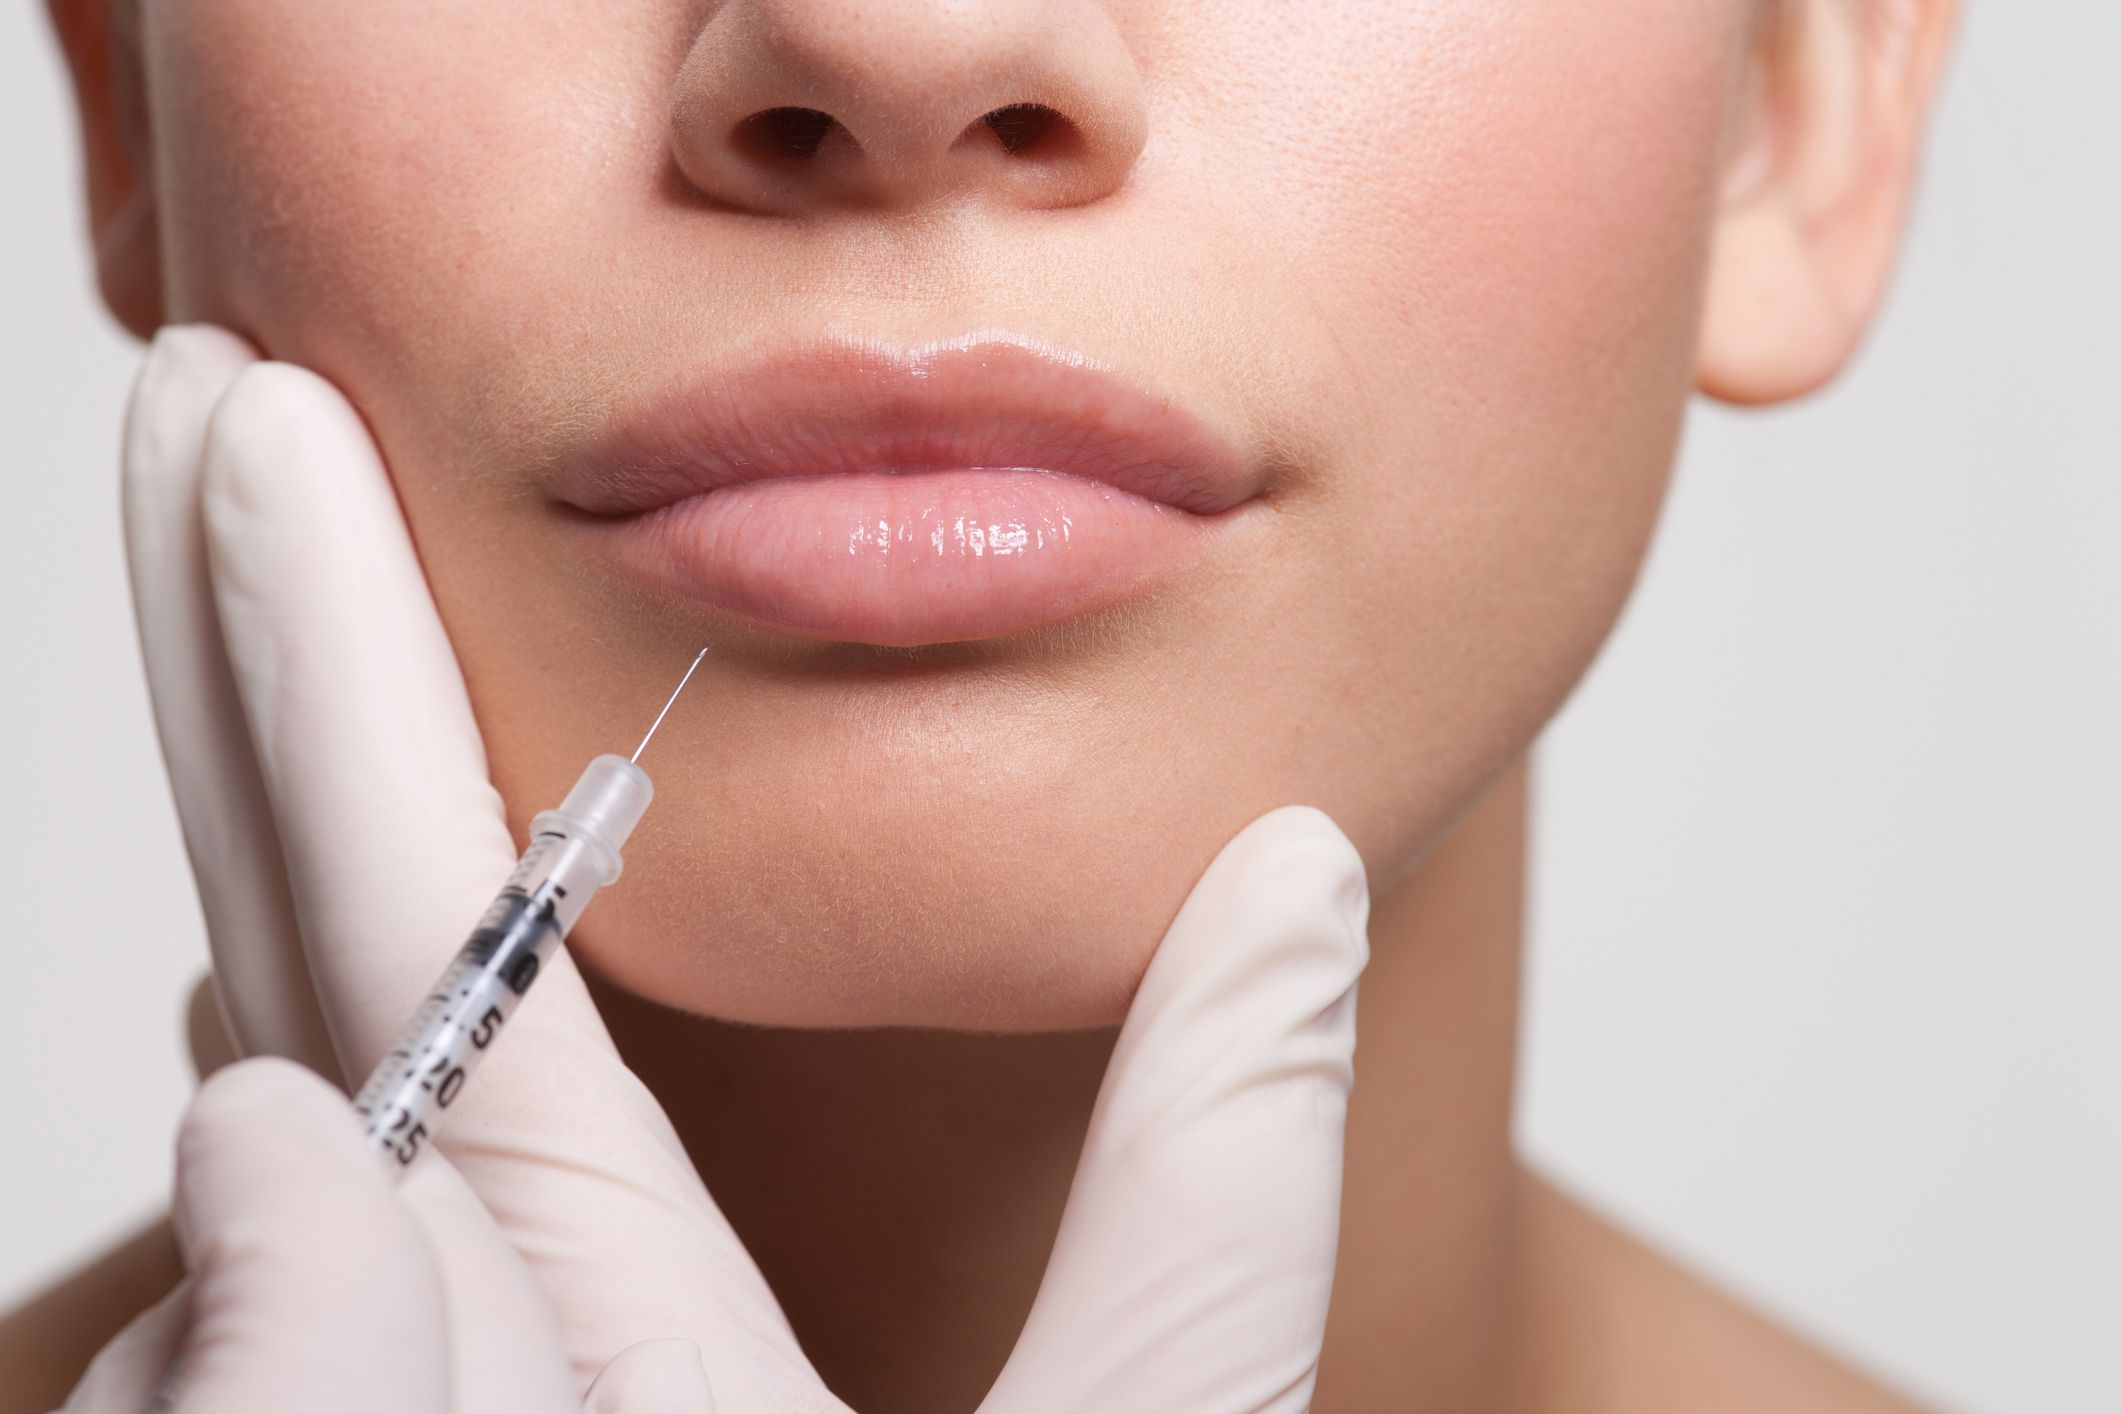 plastic surgery costs - what does insurance cover?